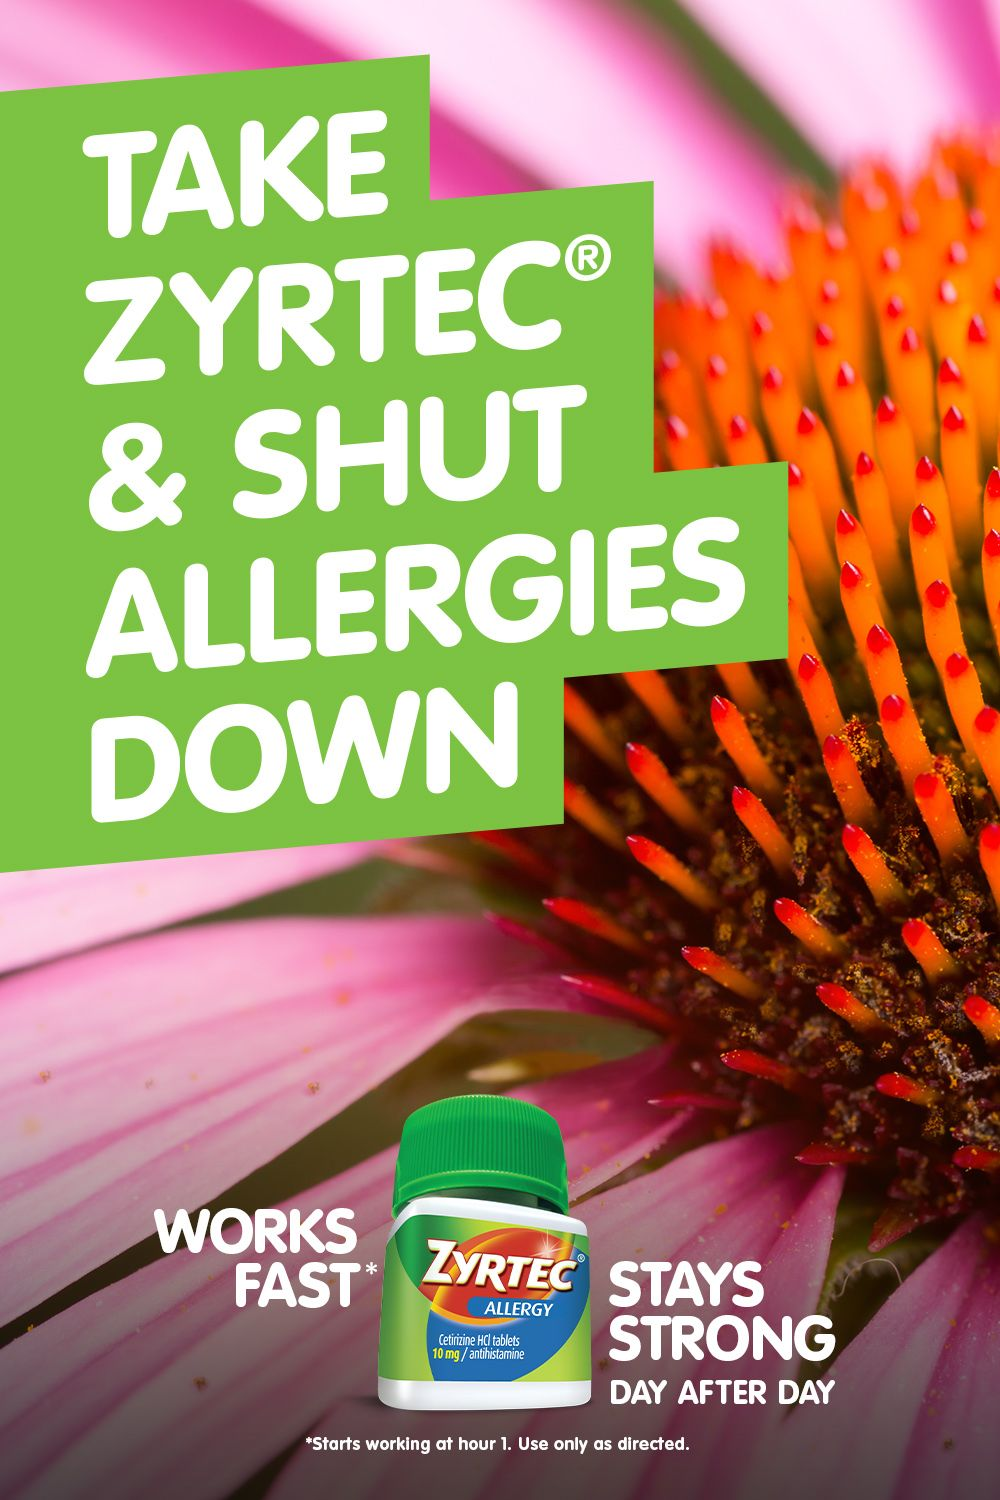 ZYRTEC® starts working at hour 1 and stays strong day after day